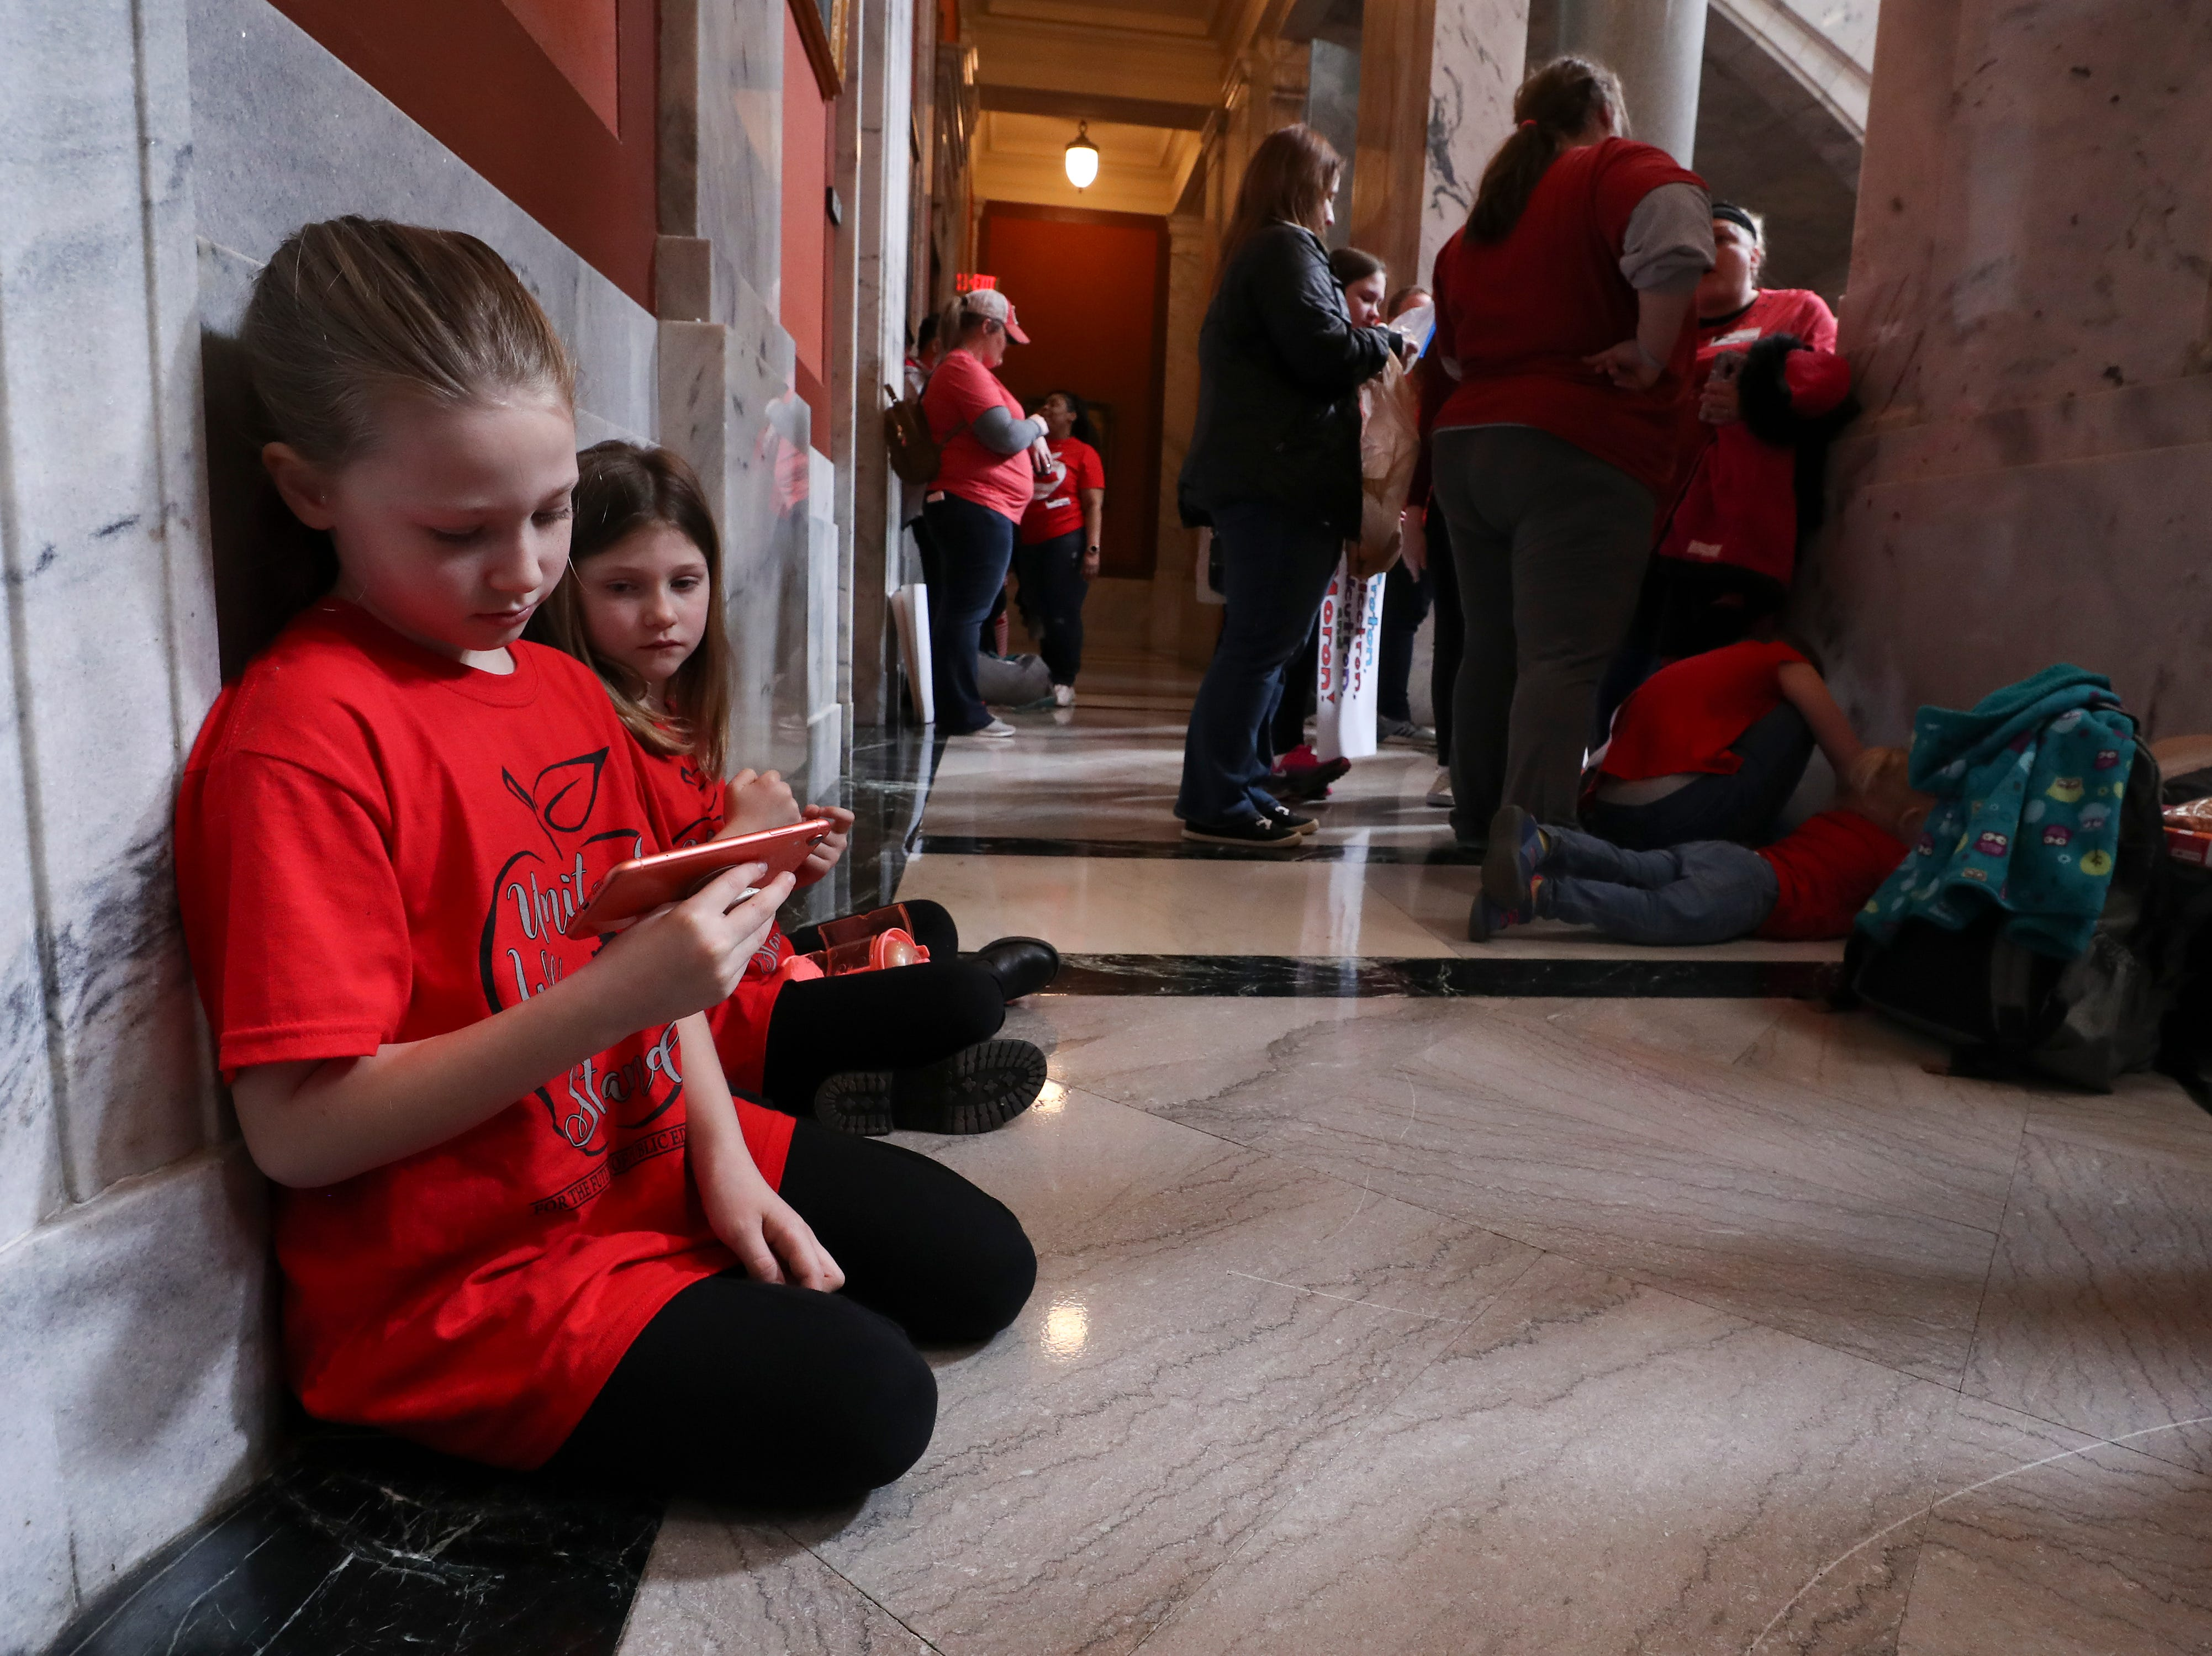 Reese McGohon, 8, left, and her sister Brynne McGohon, 6, watched a video on a cellphone as they attended the teacher protest with their mom, a Bullitt County social worker, in Frankfort. March 13, 2019